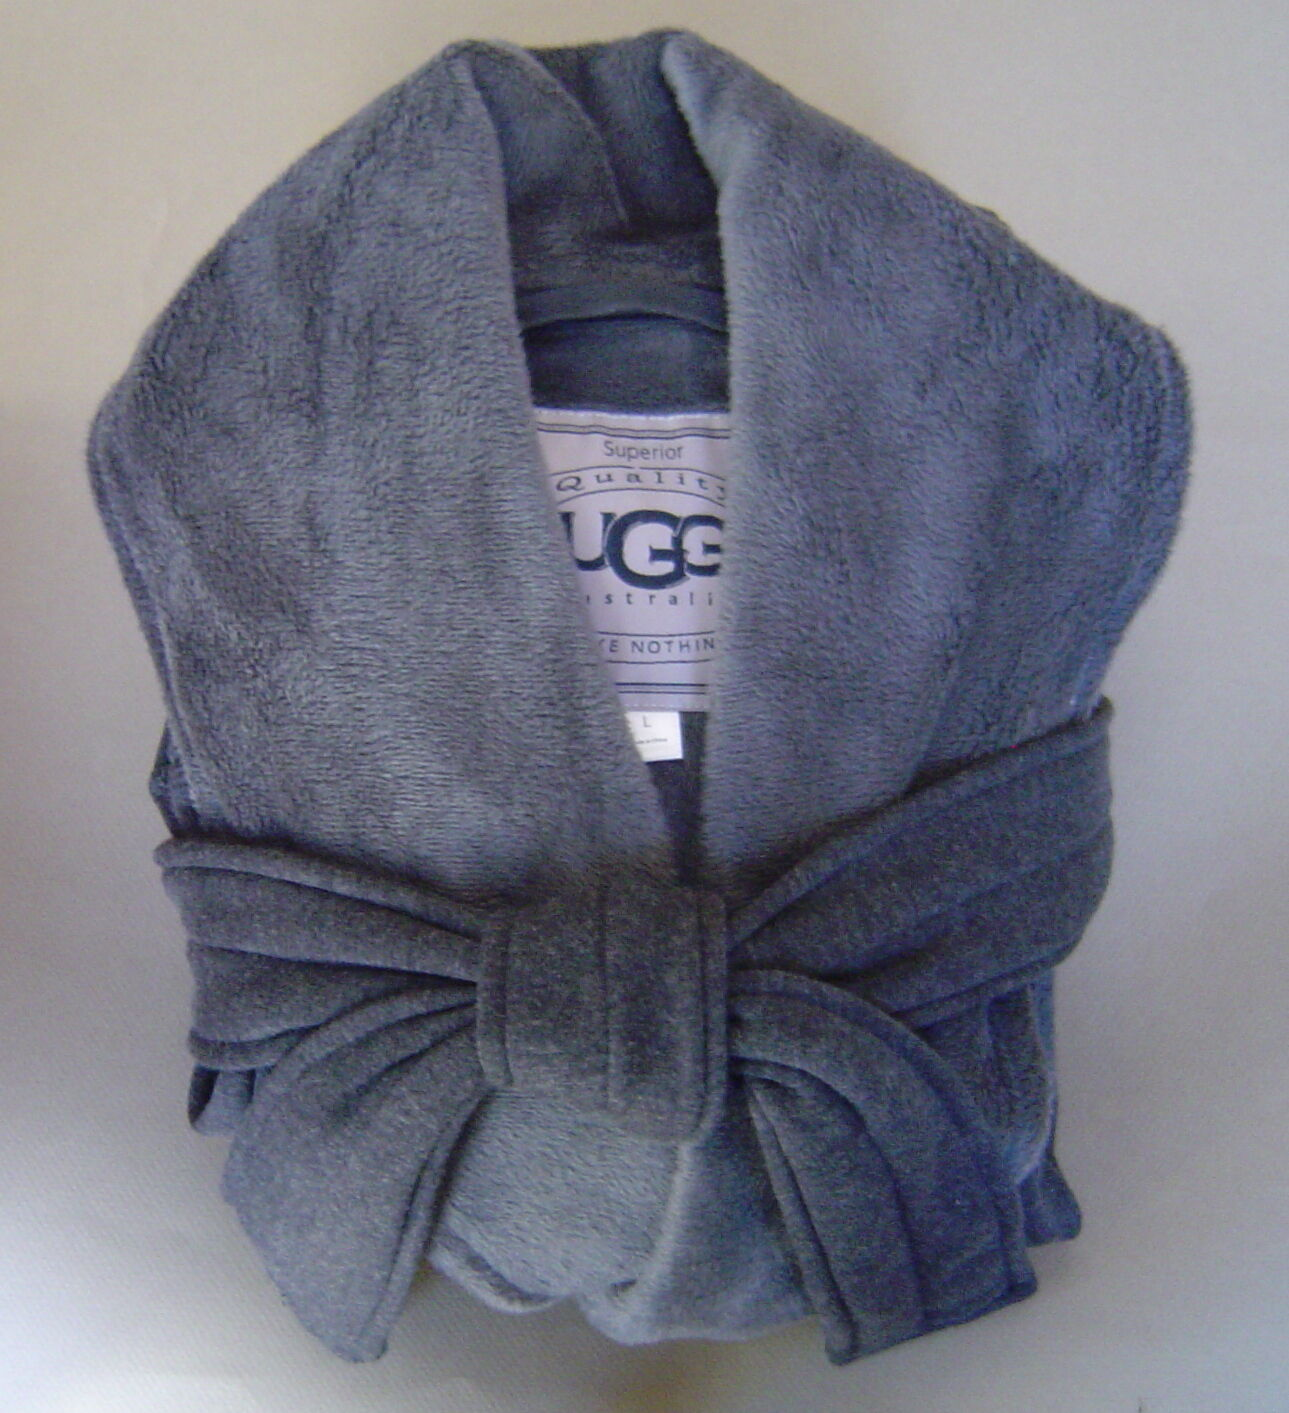 NWT $ 125 UGG Australia DUFFIELD Taille S ROBE À CHAUSSONS BLANCHES Noir Heather UA4101W